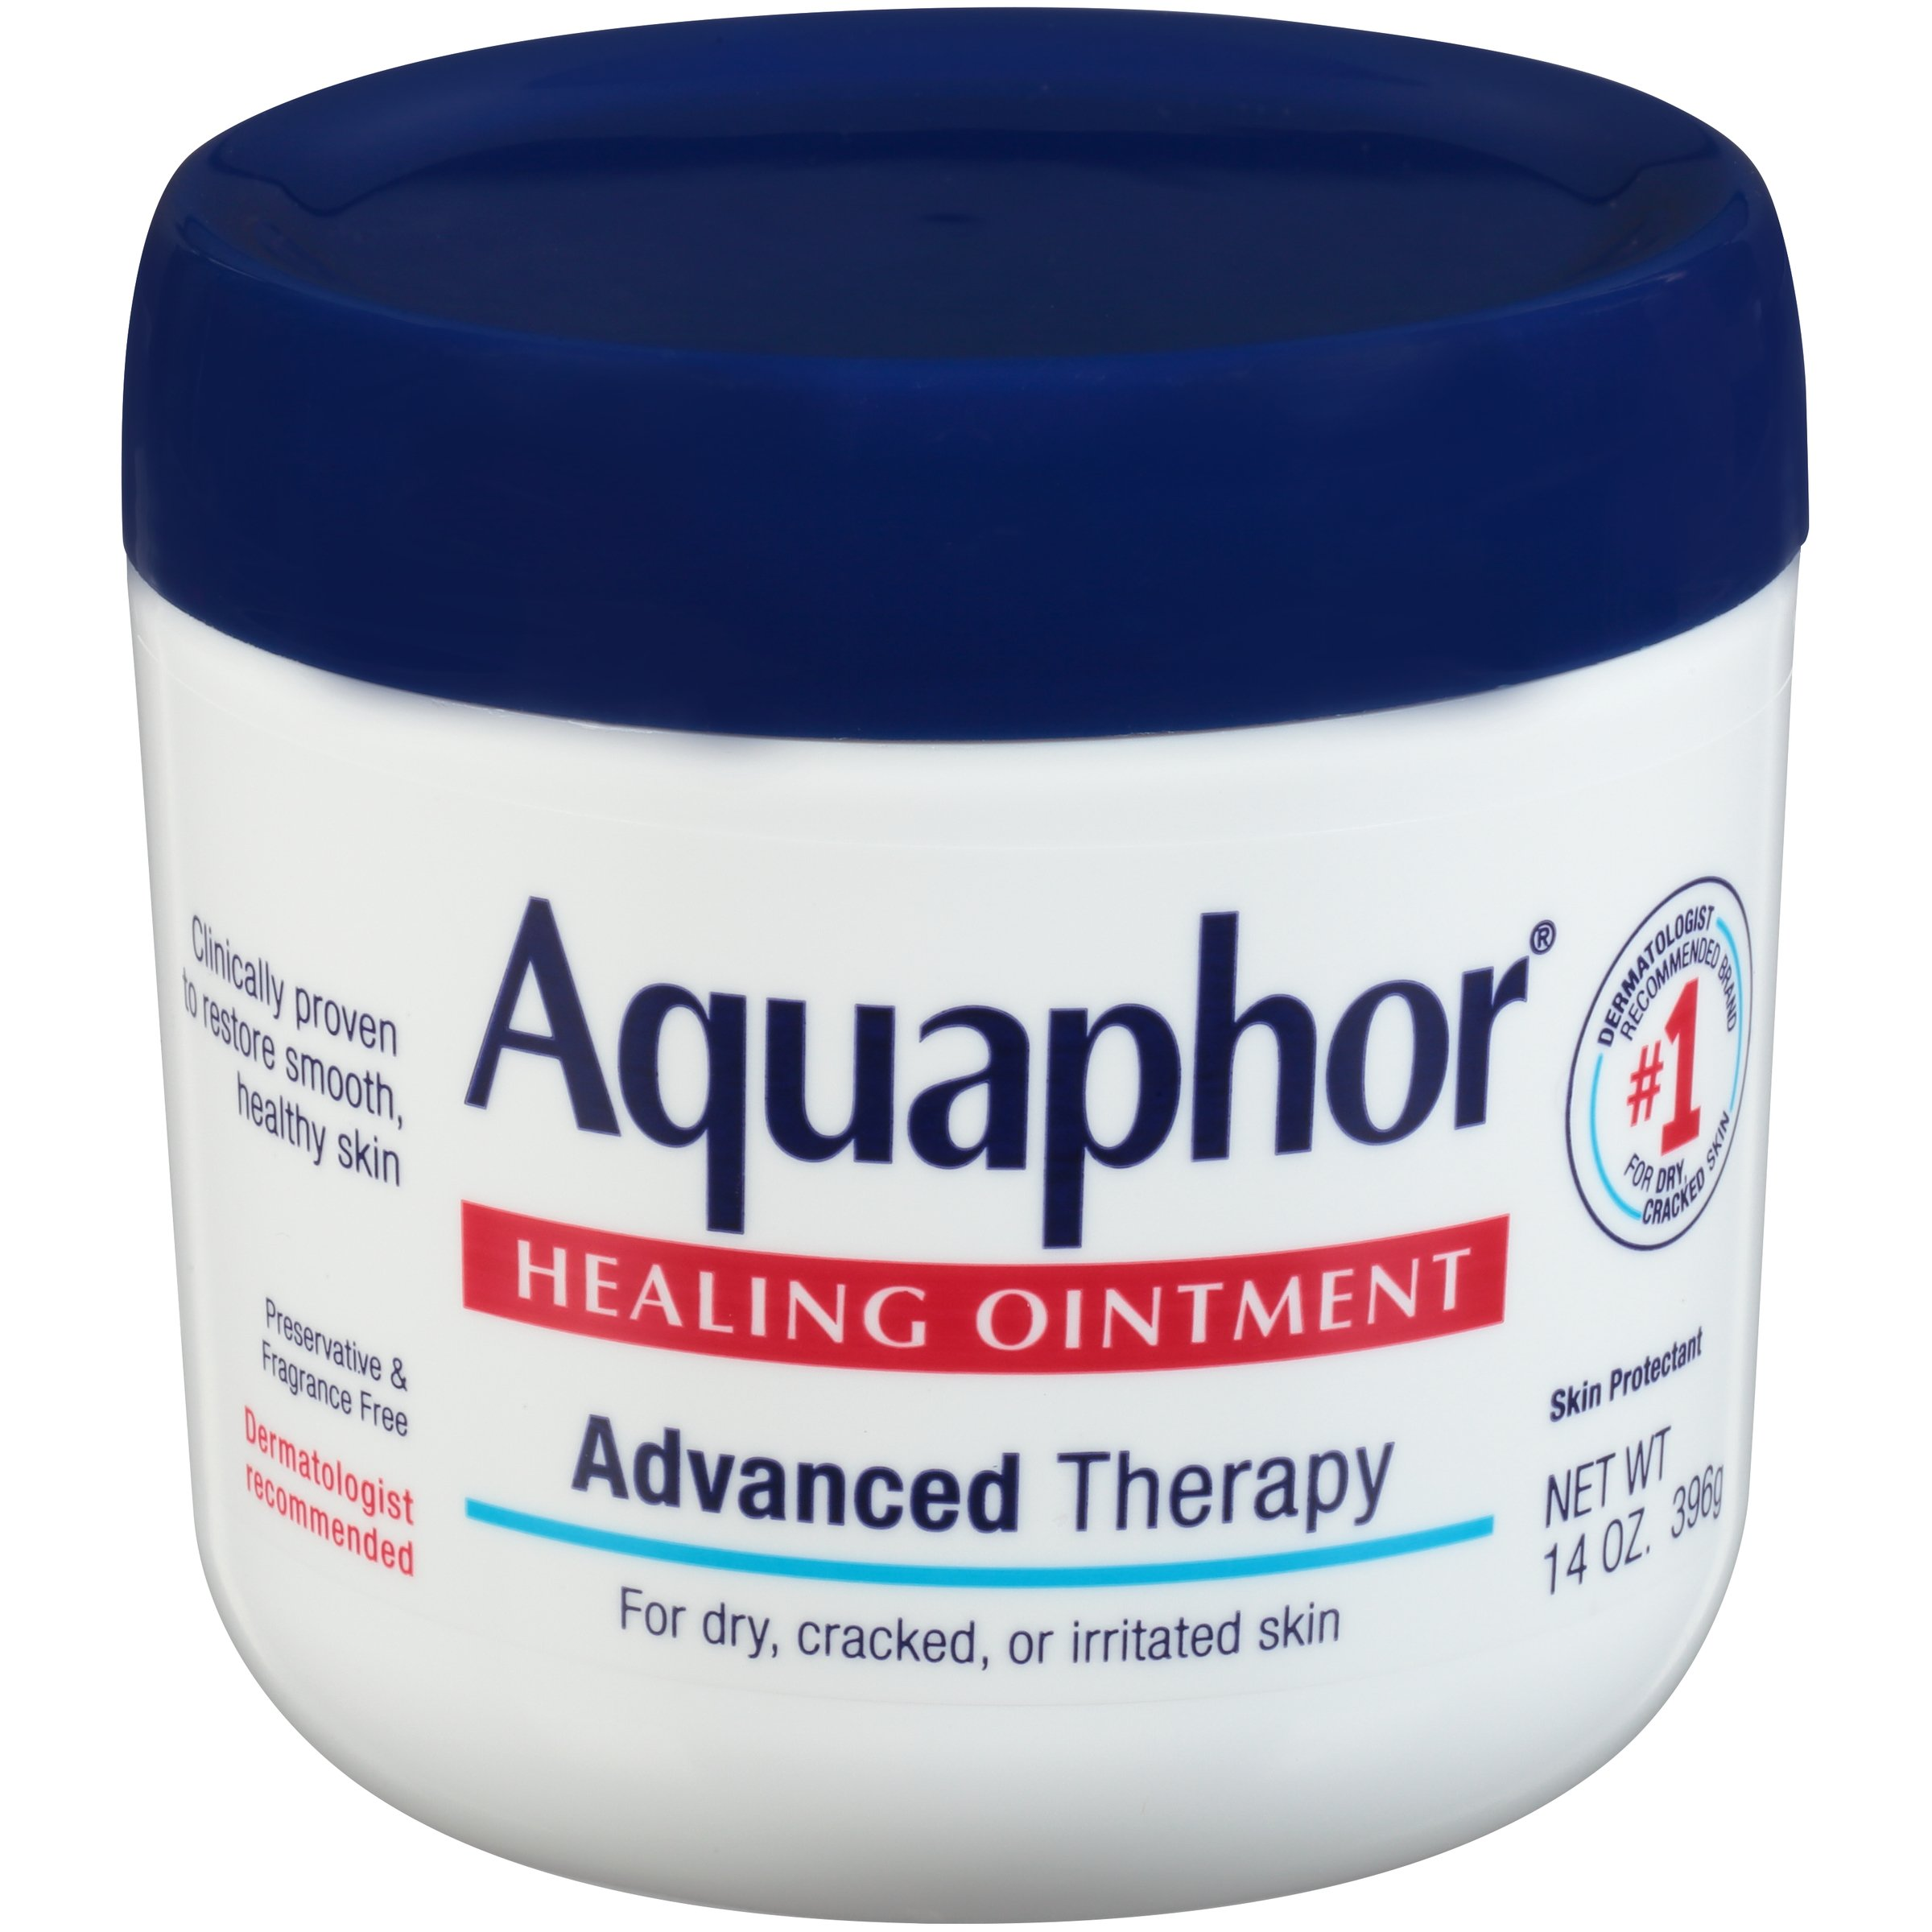 Aquaphor Healing Ointment - Moisturizing Skin Protectant for Dry Cracked Hands, Heels and Elbows - 14 oz. Jar by Aquaphor